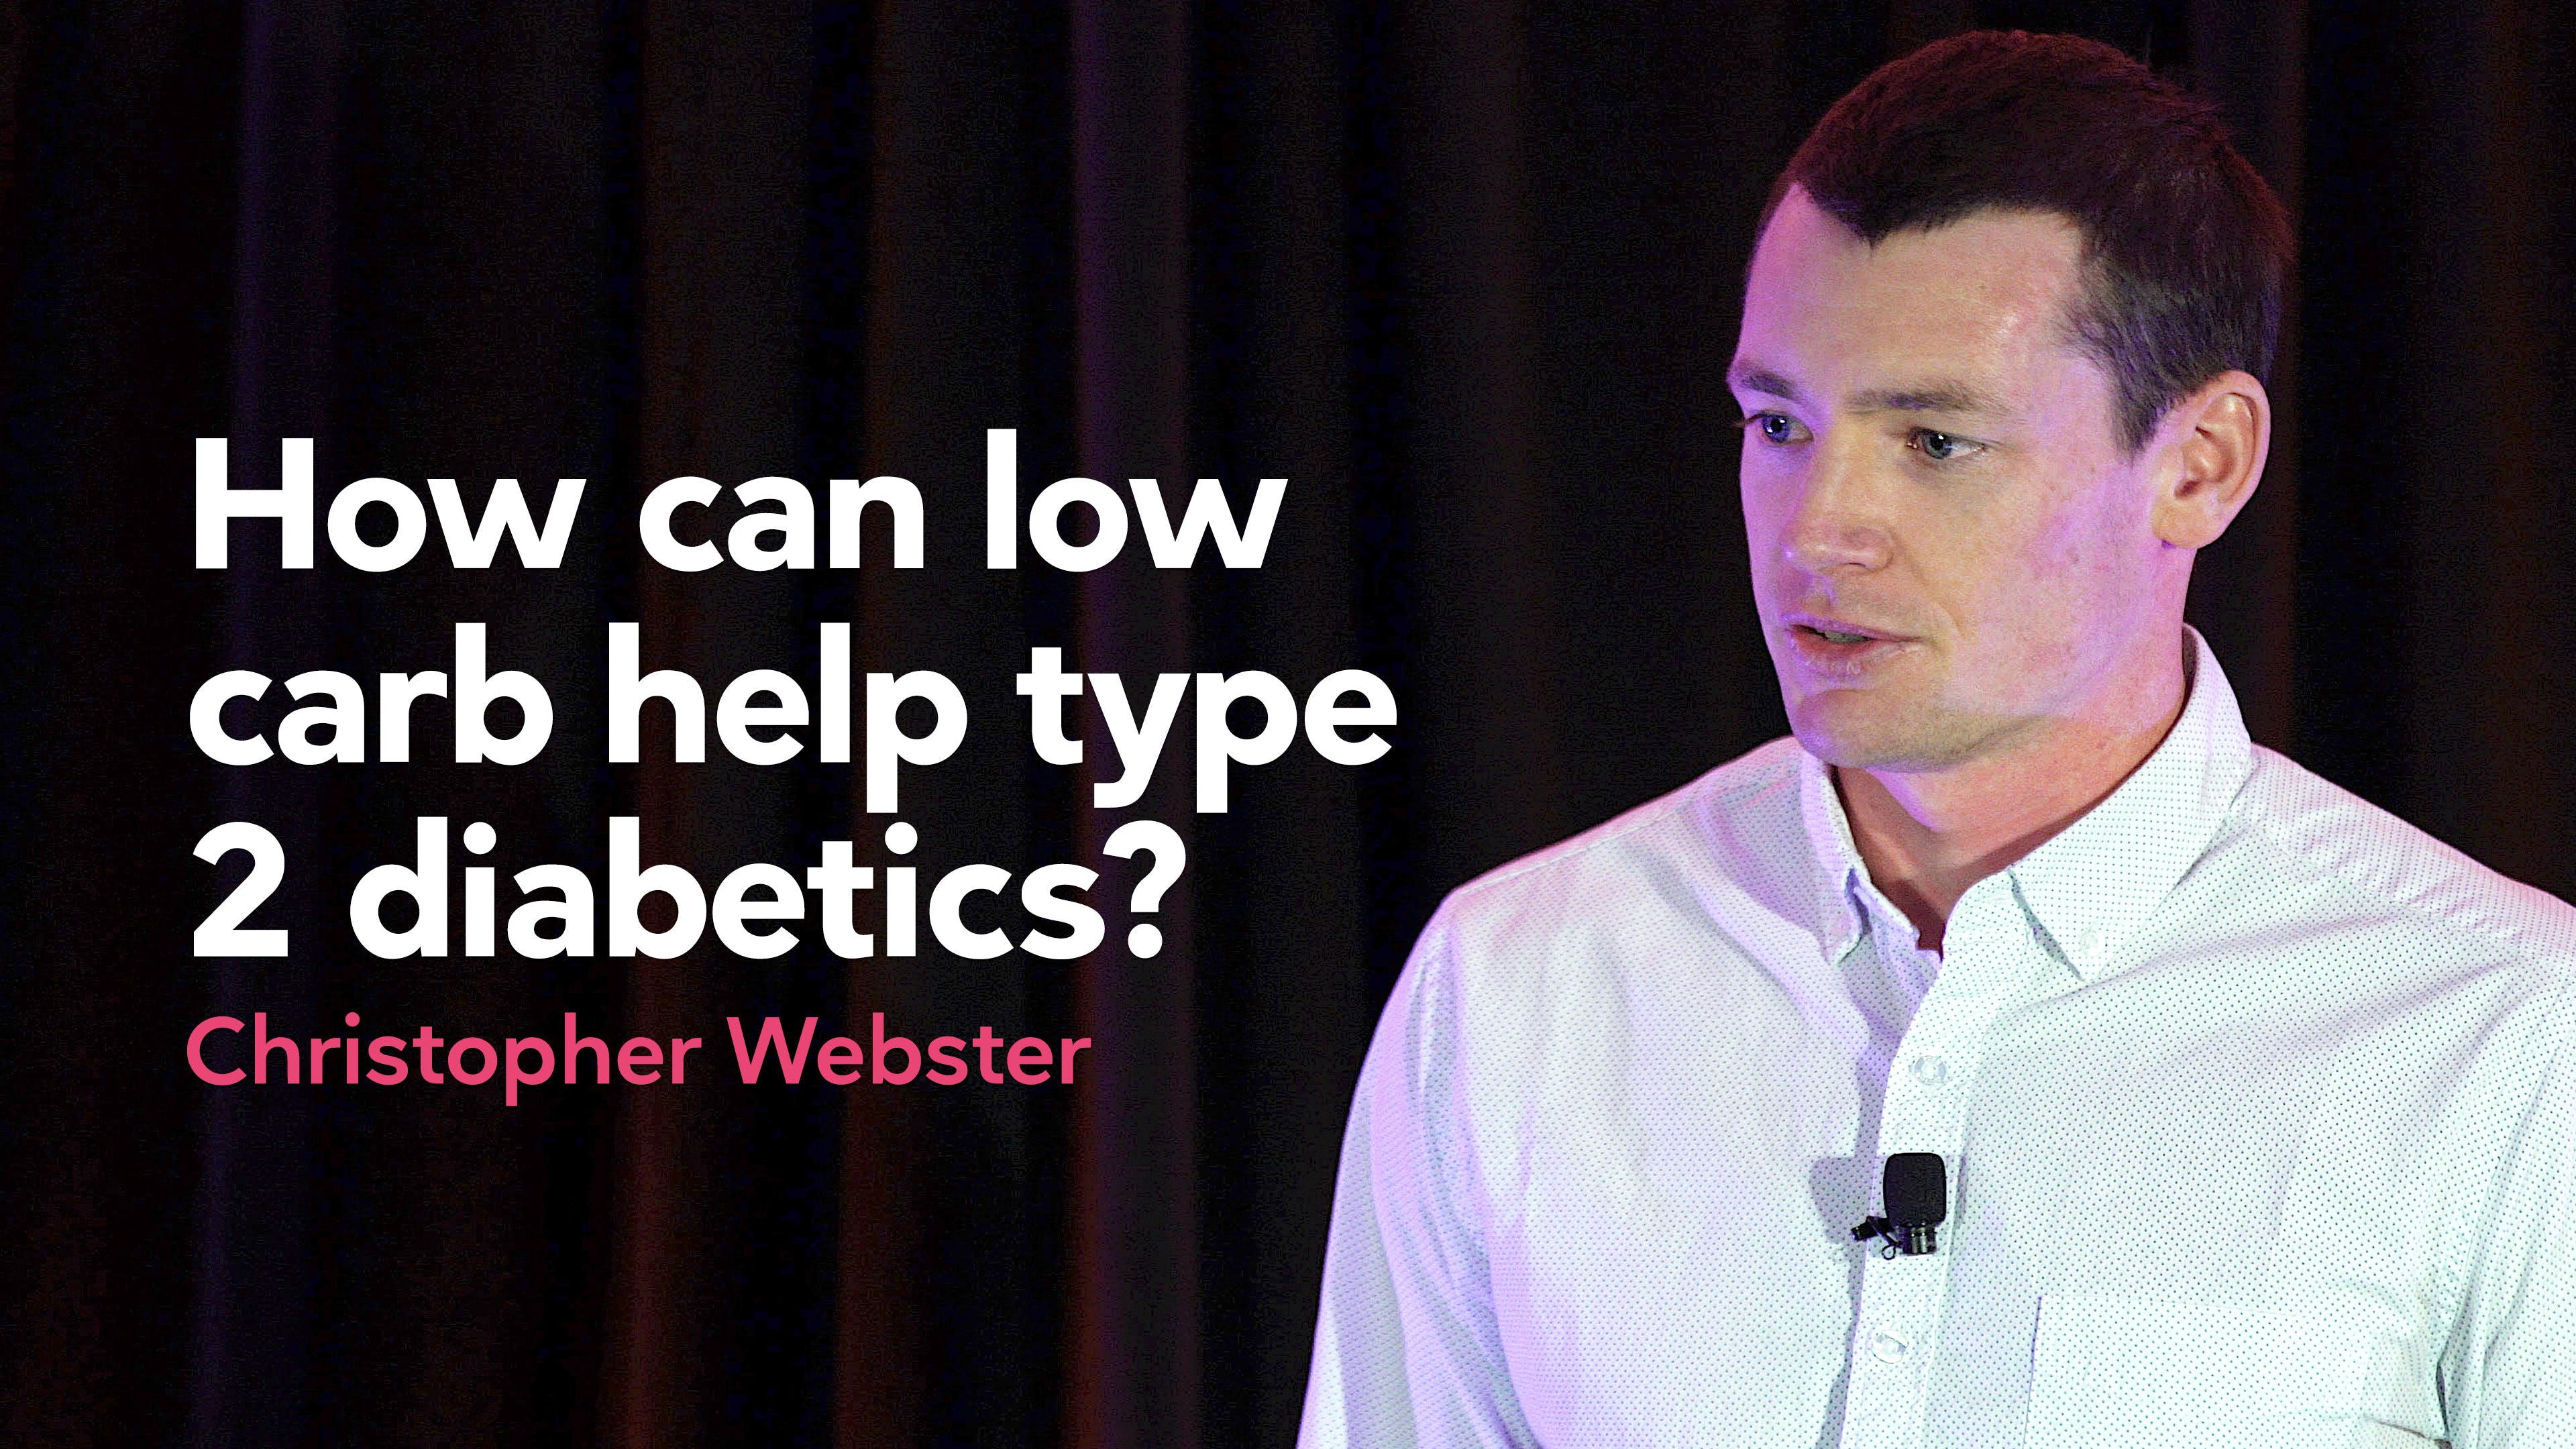 How can low carb help type 2 diabetics?